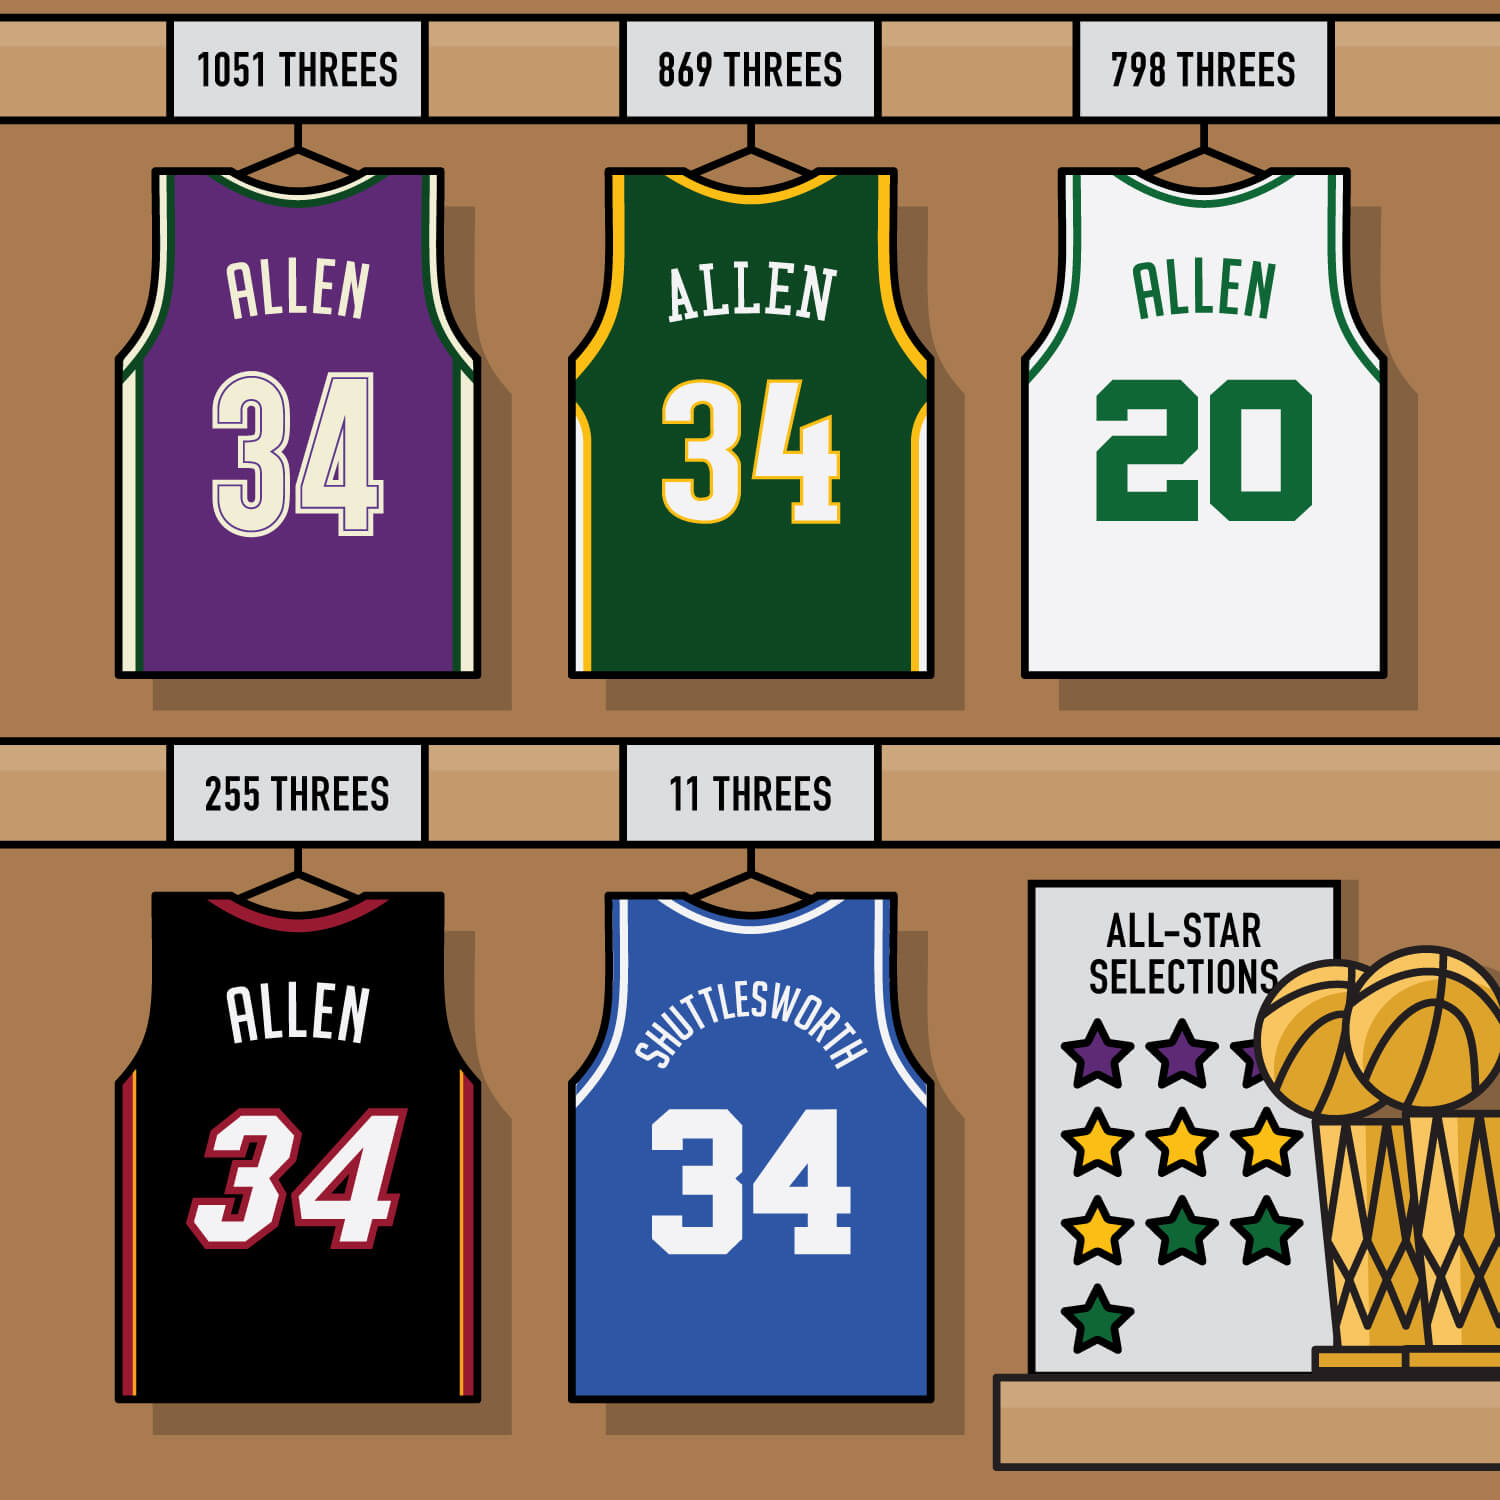 Ray Allen career threes by team